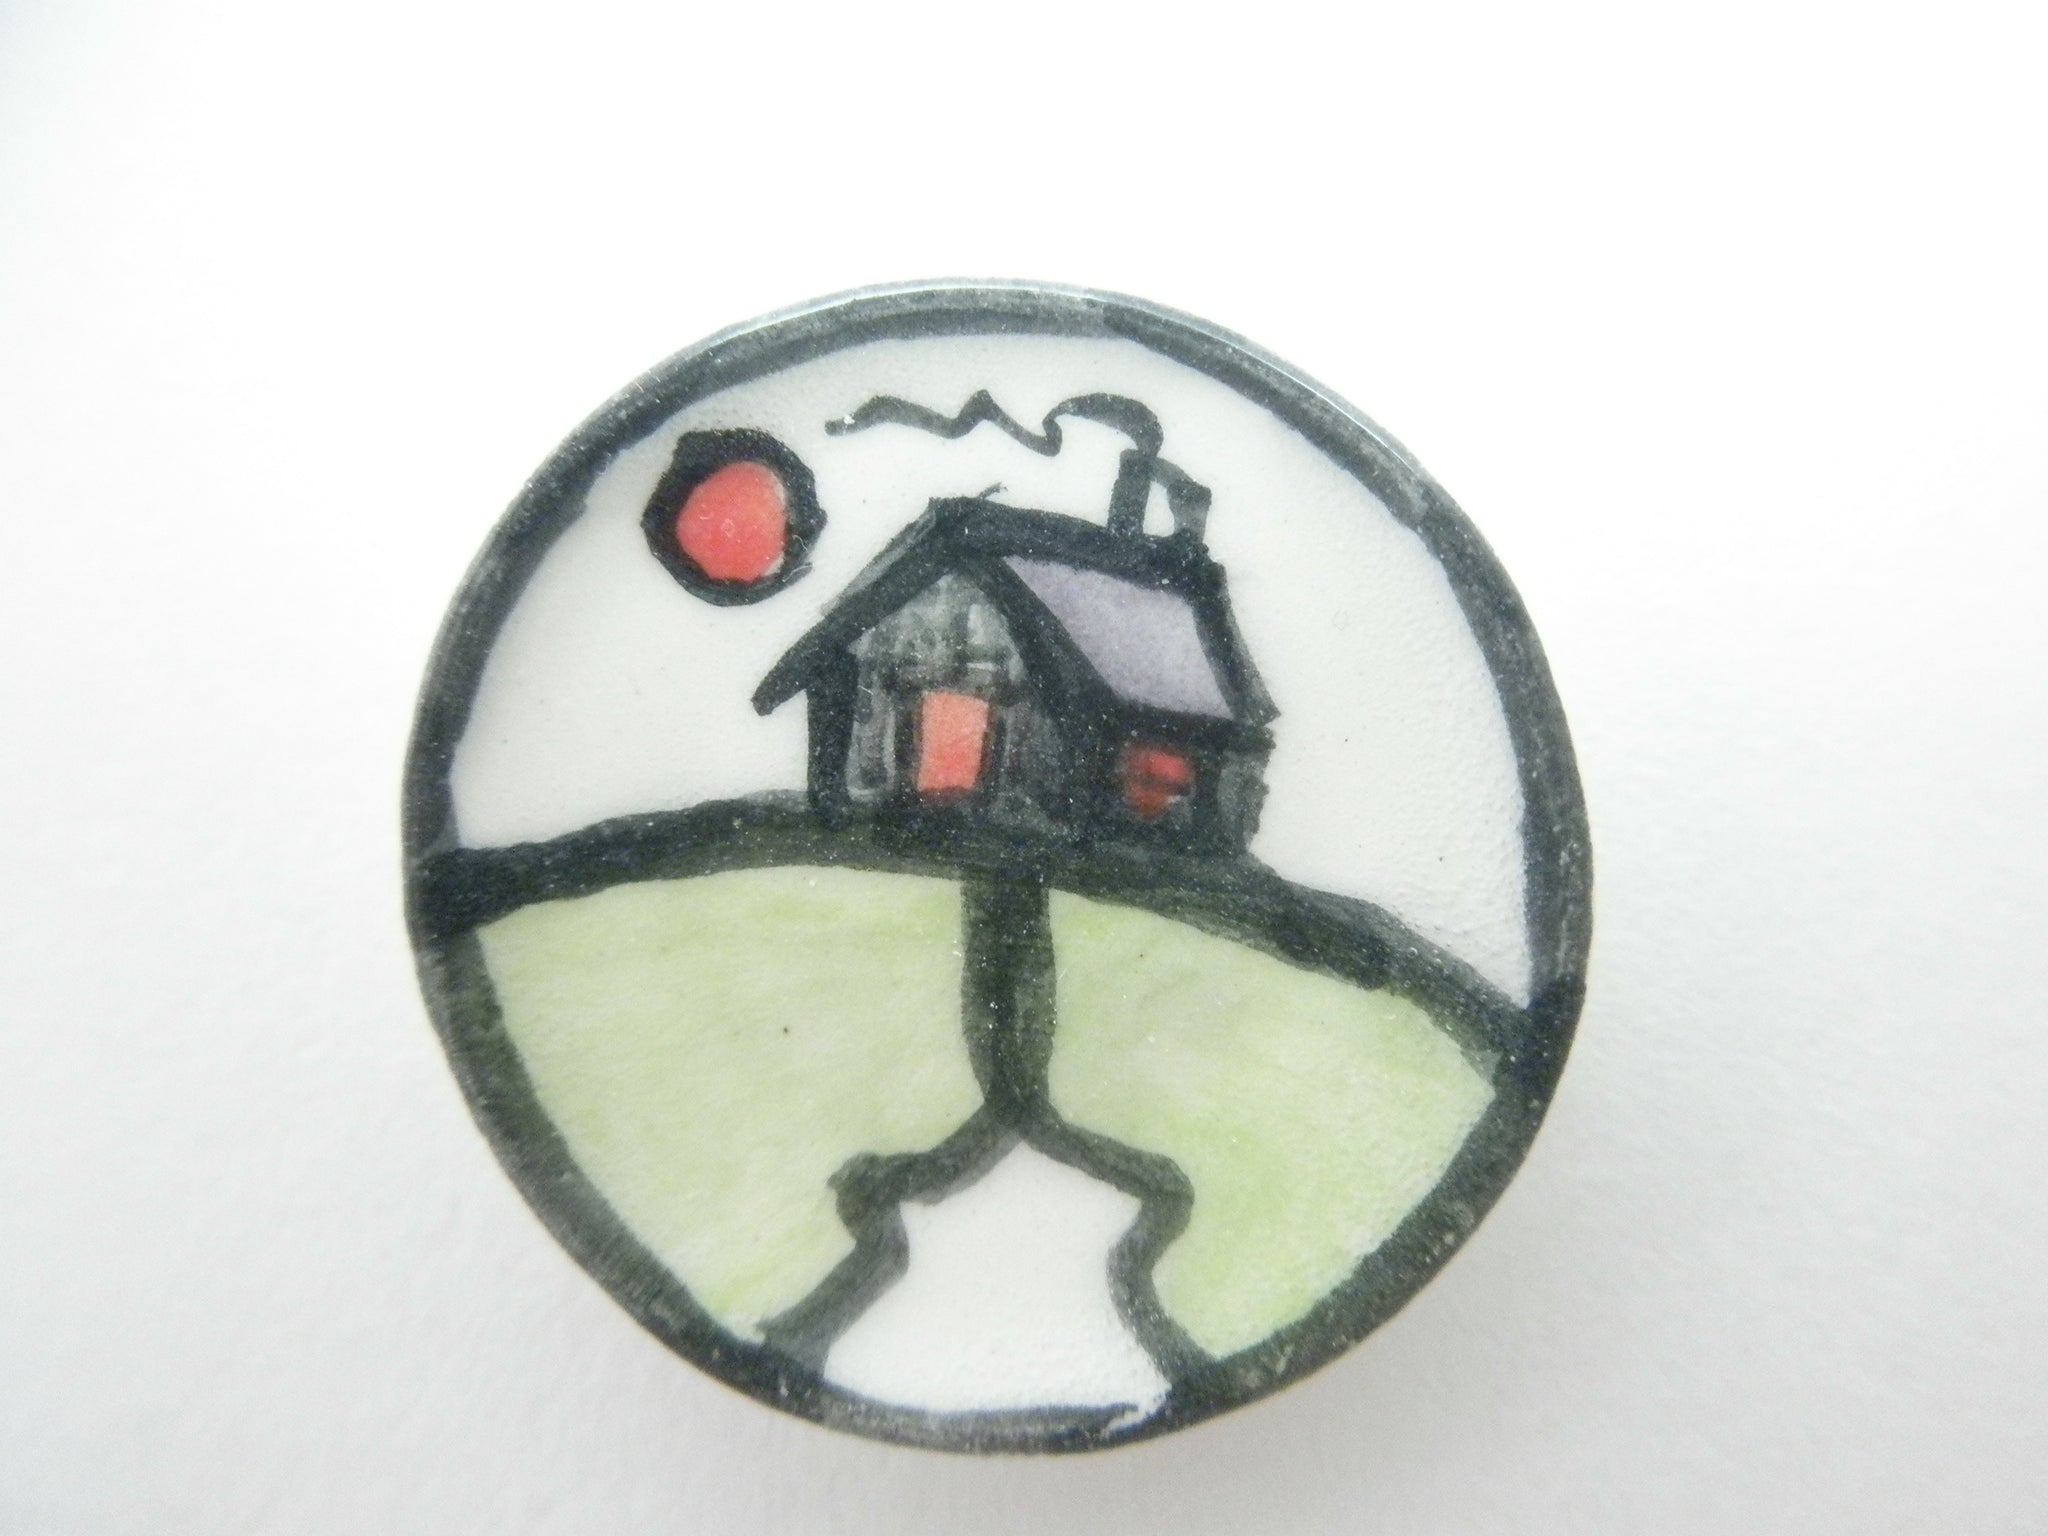 Miniature art deco ceramic plate - house with purple roof